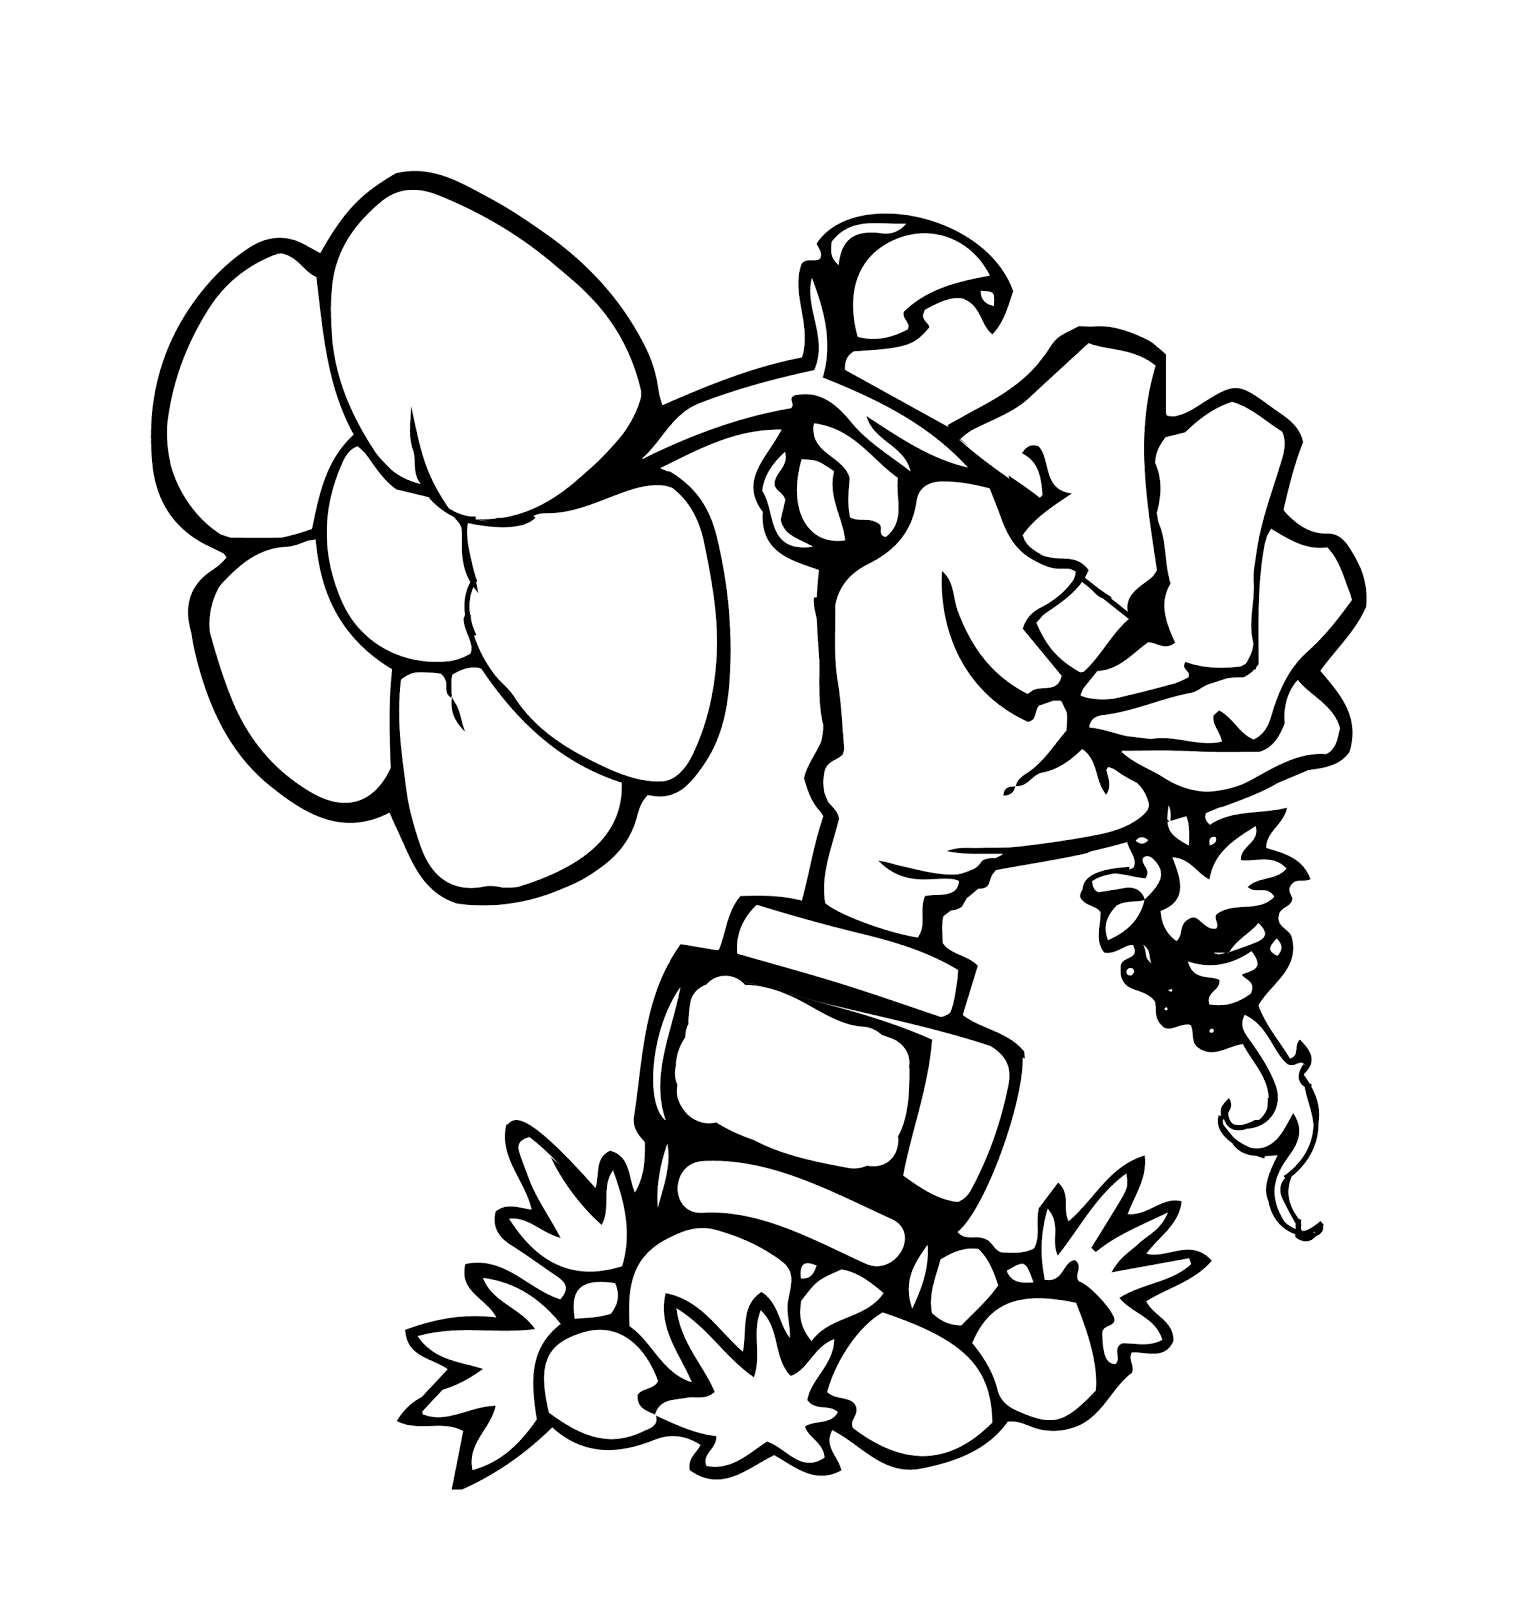 plants vs zombies coloring pages peashooter pvz 2 coloring pages coloring pages plants vs zombies coloring peashooter pages plants zombies vs